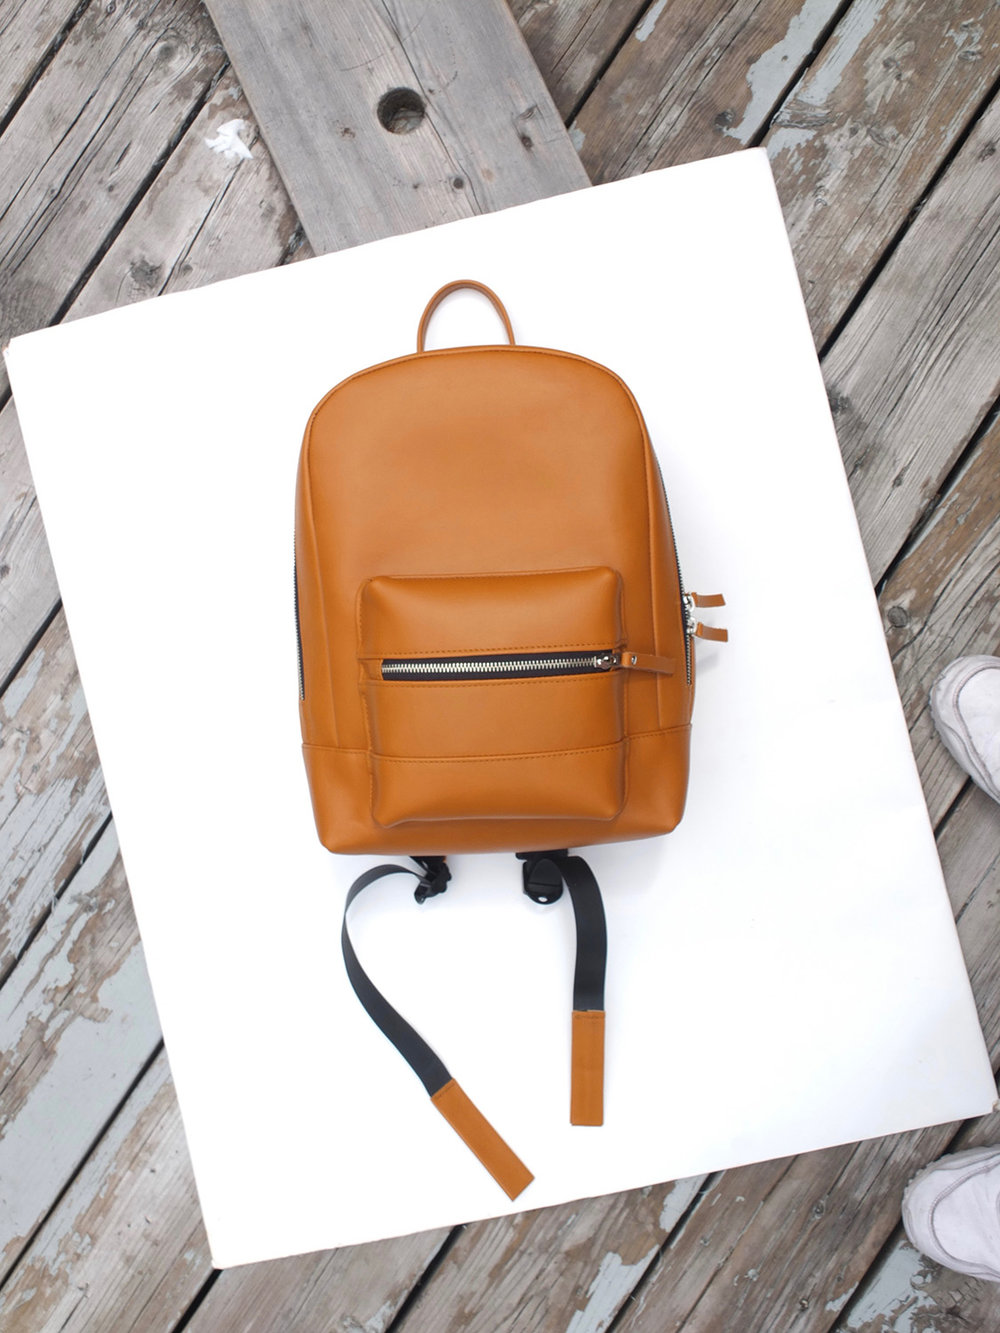 RATIONALE MINI backpack